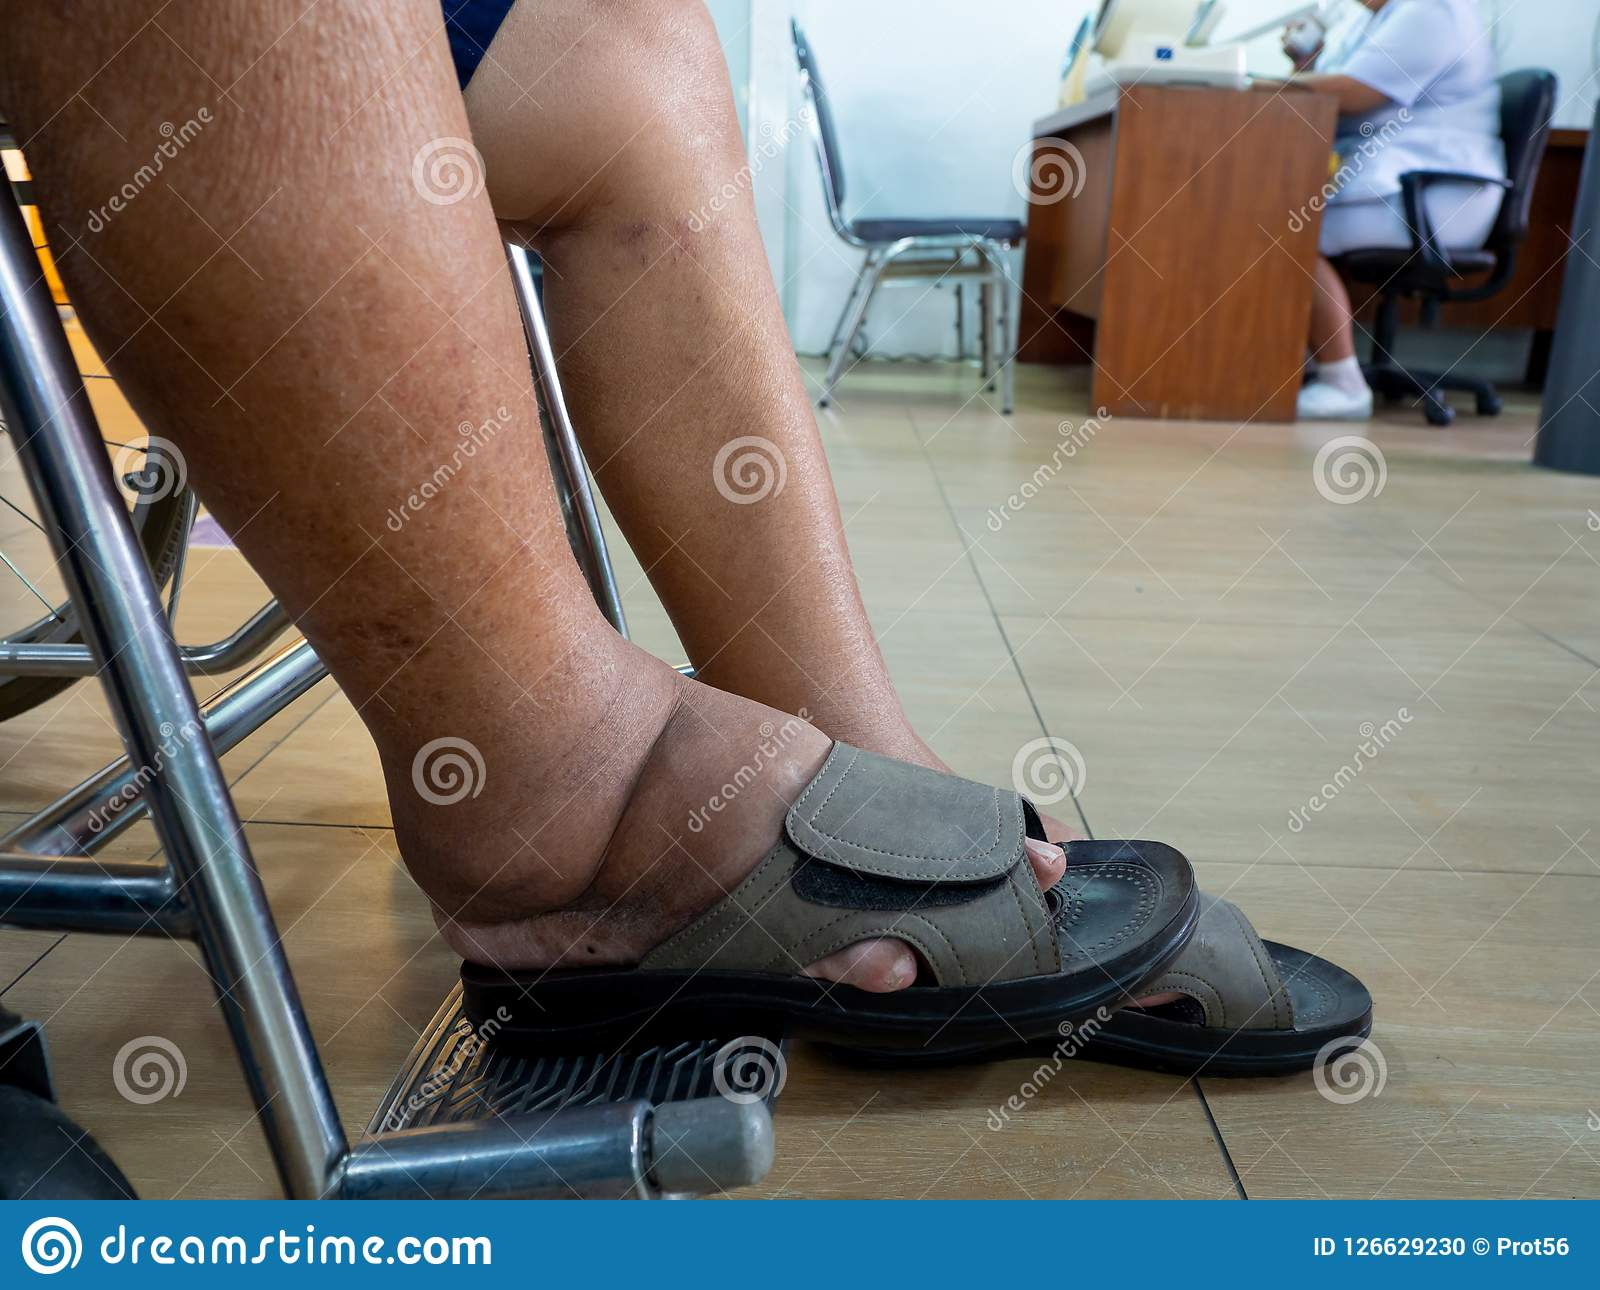 Men With Diabetes And Kidney Disease With Swelling Feet Can Not